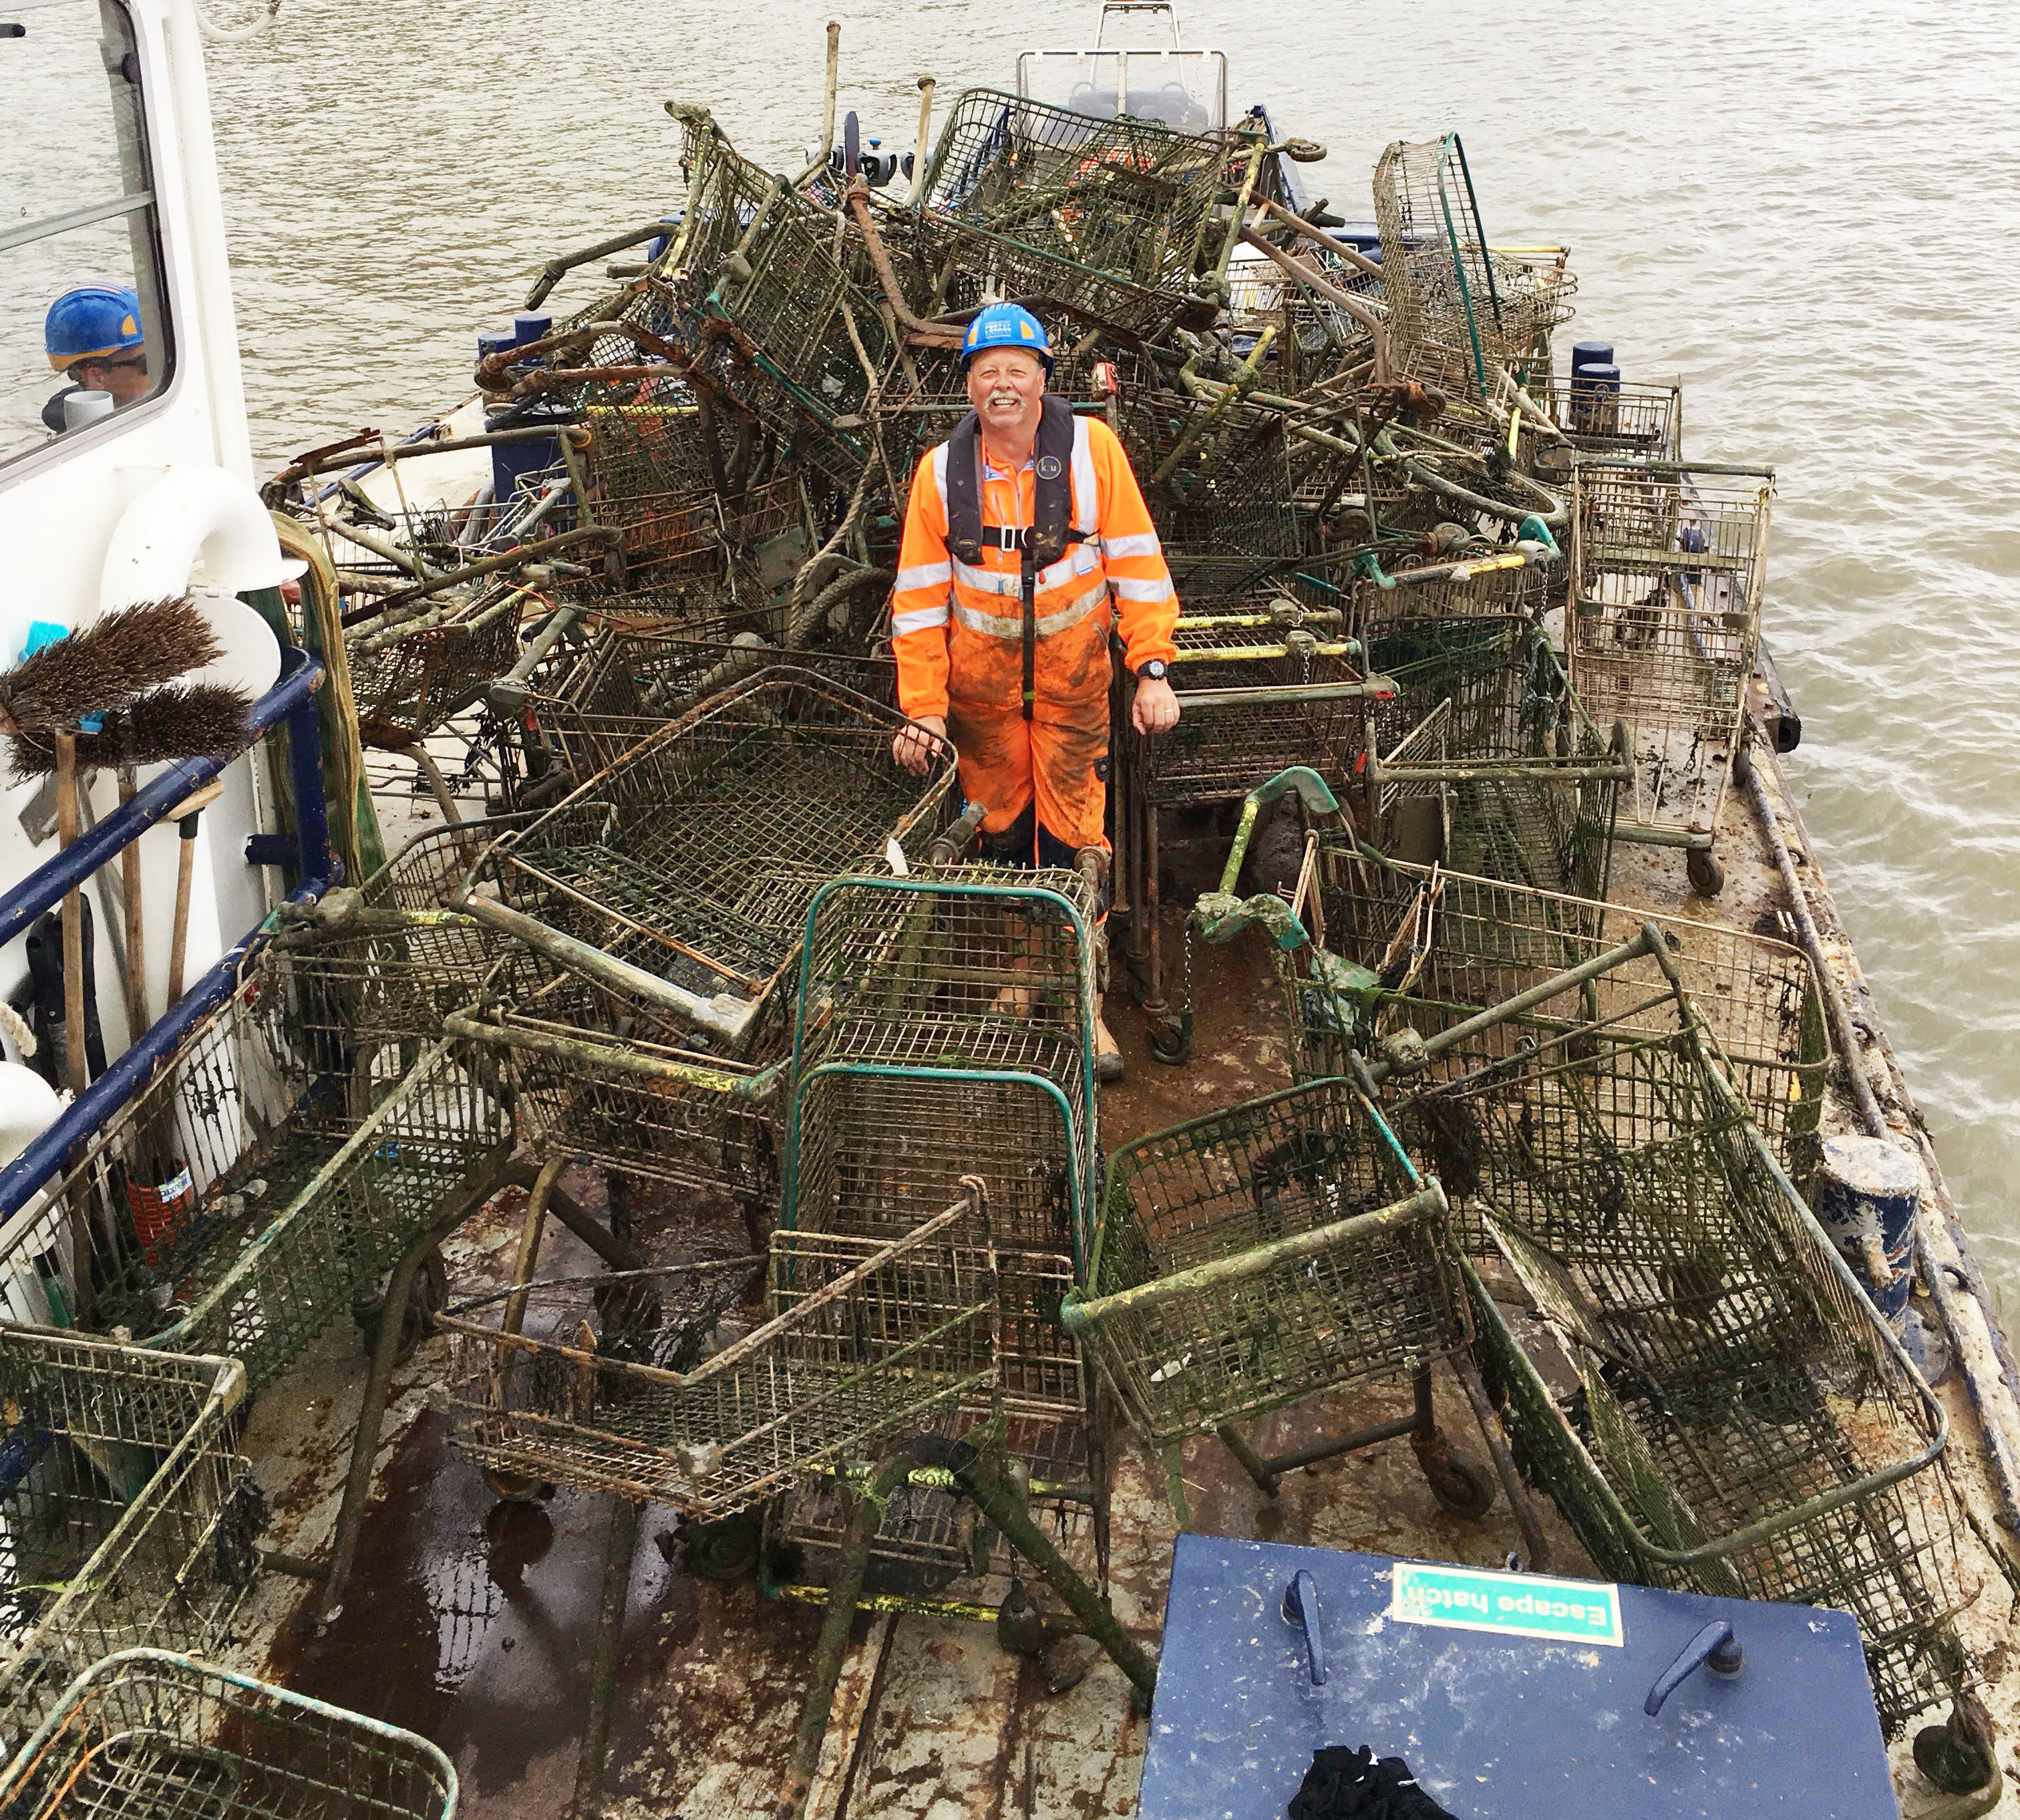 Supermarket heap: trolley haul uncovered during South London foreshore clean-up